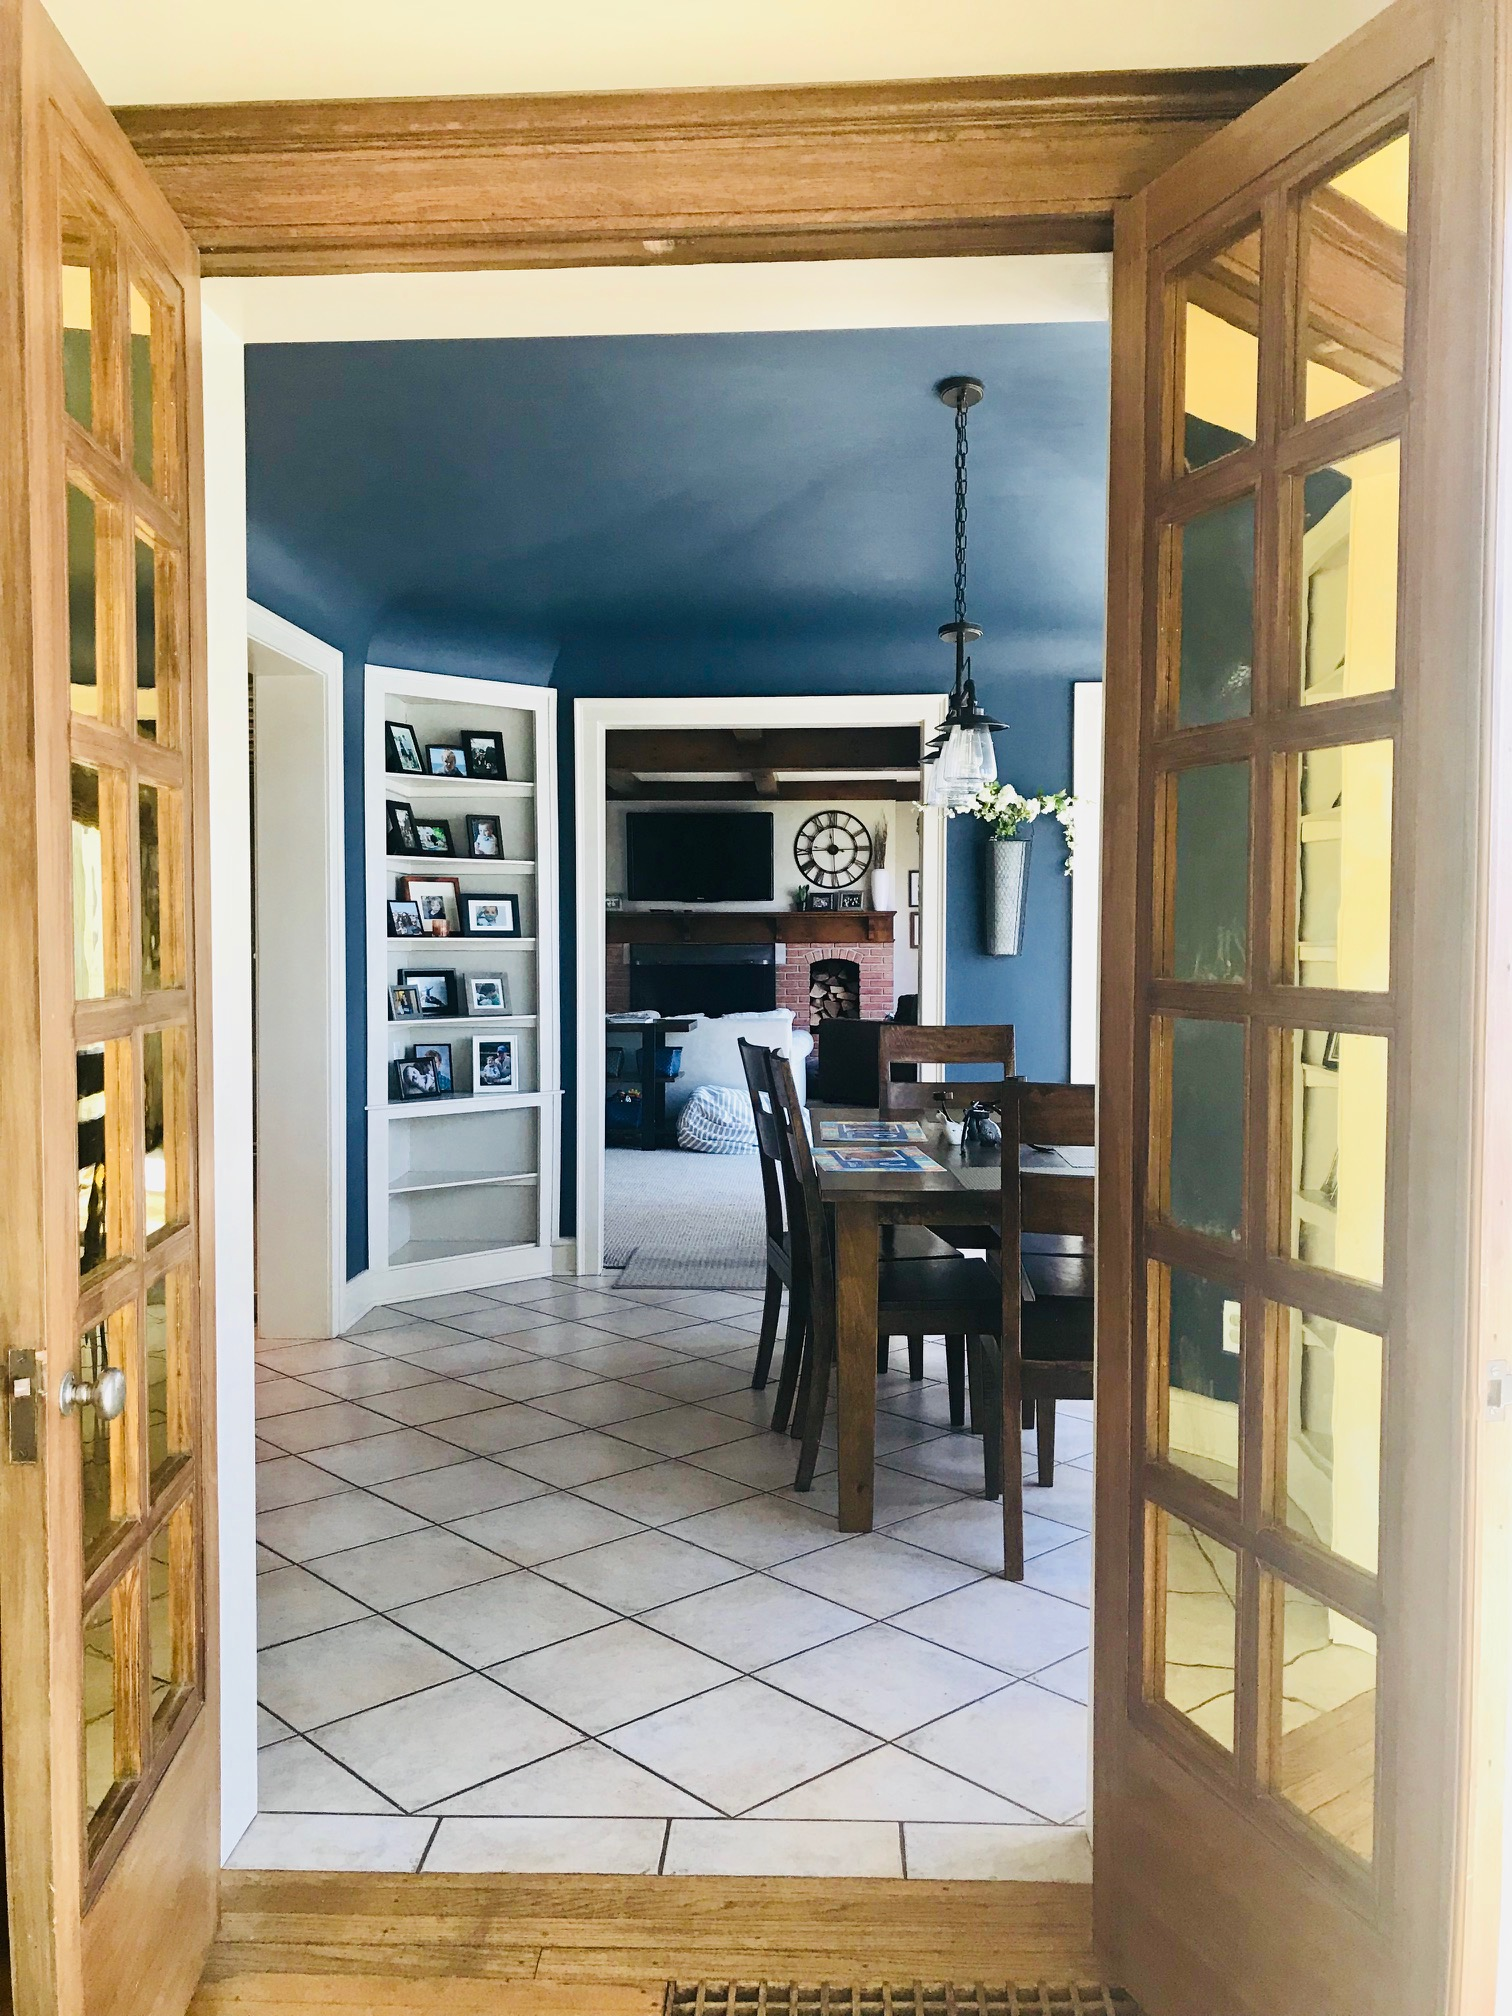 From dining room to breakfast nook